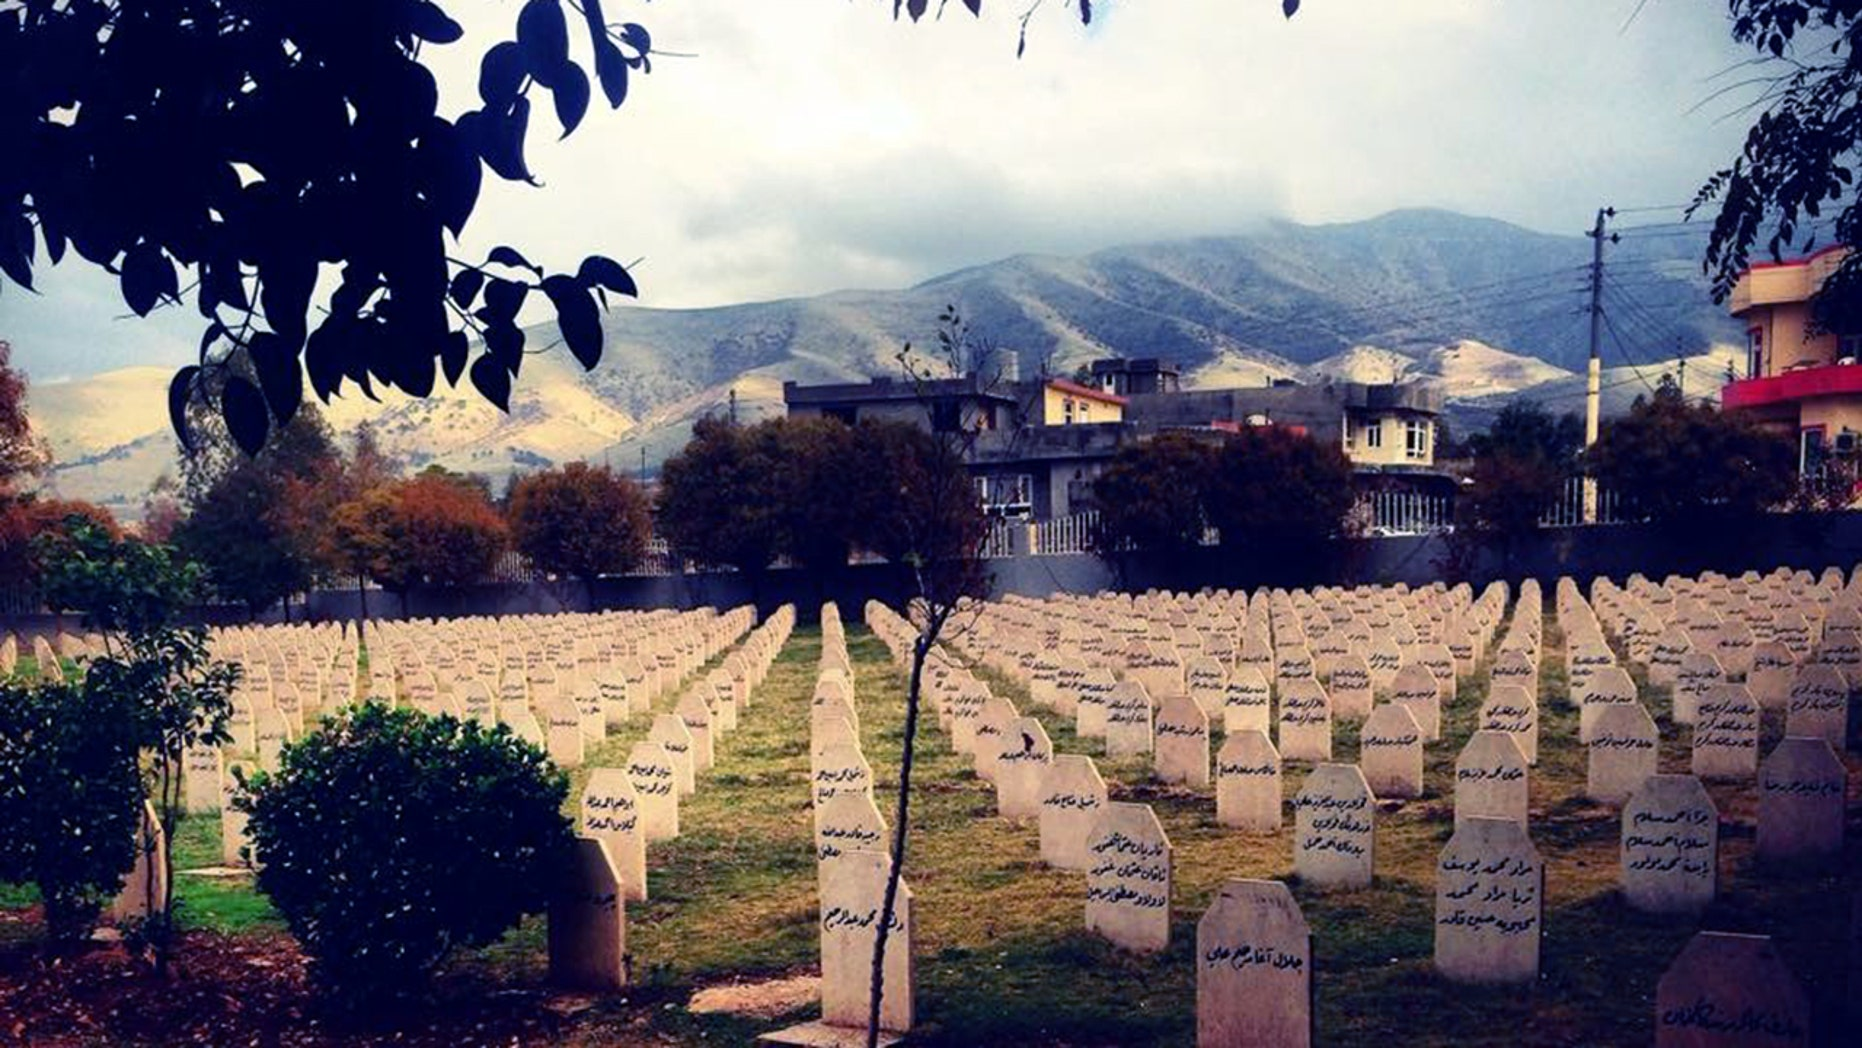 A graveyard contains the remains of many Iraqi Kurds killed in poison gas attacks by the Saddam Hussein regime.